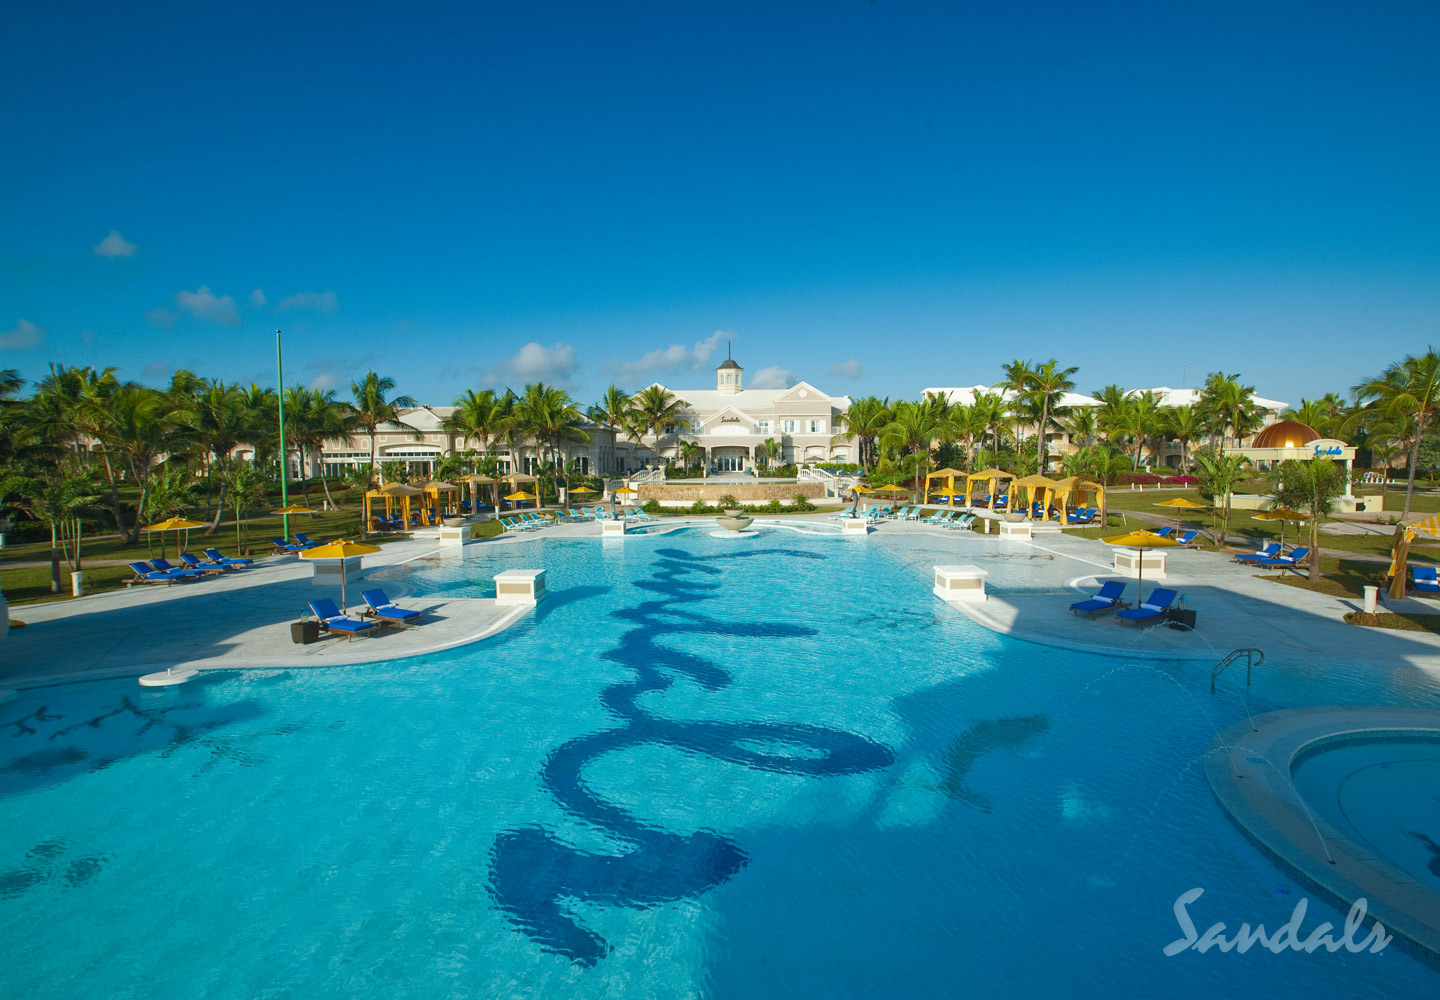 Travel Agency All-Inclusive Resort Sandals Emerald Bay 070